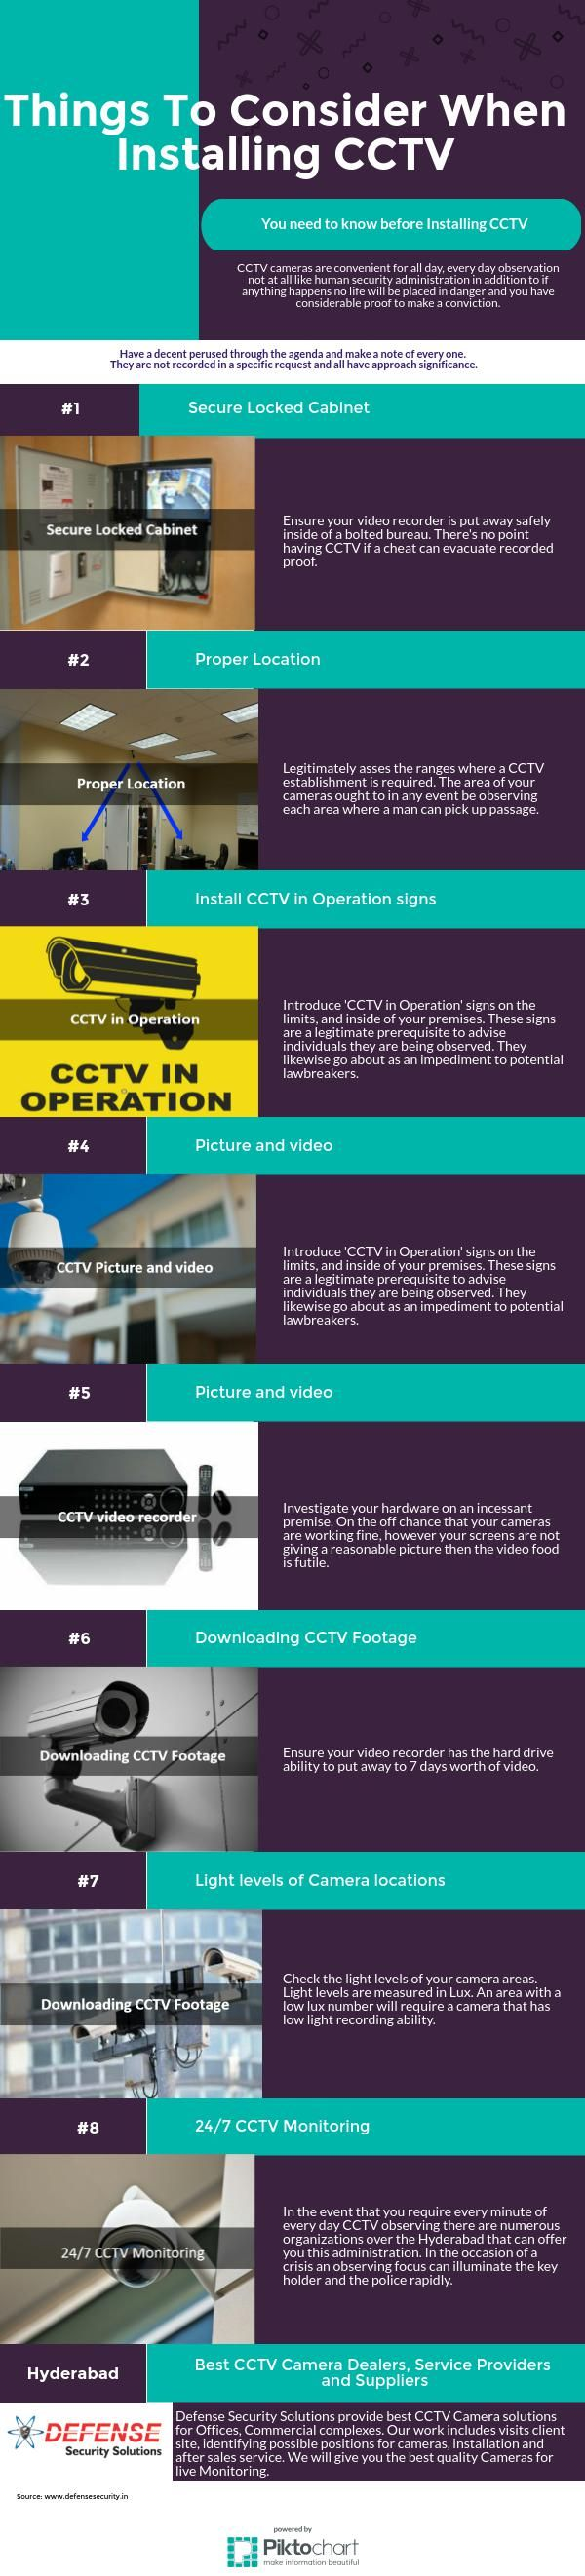 Defense Security offered CCTV Camera Installation Service in Hyderabad.  We provide CCTV Camera Installation Service with Affordability. http://www.defensesecurity.in/